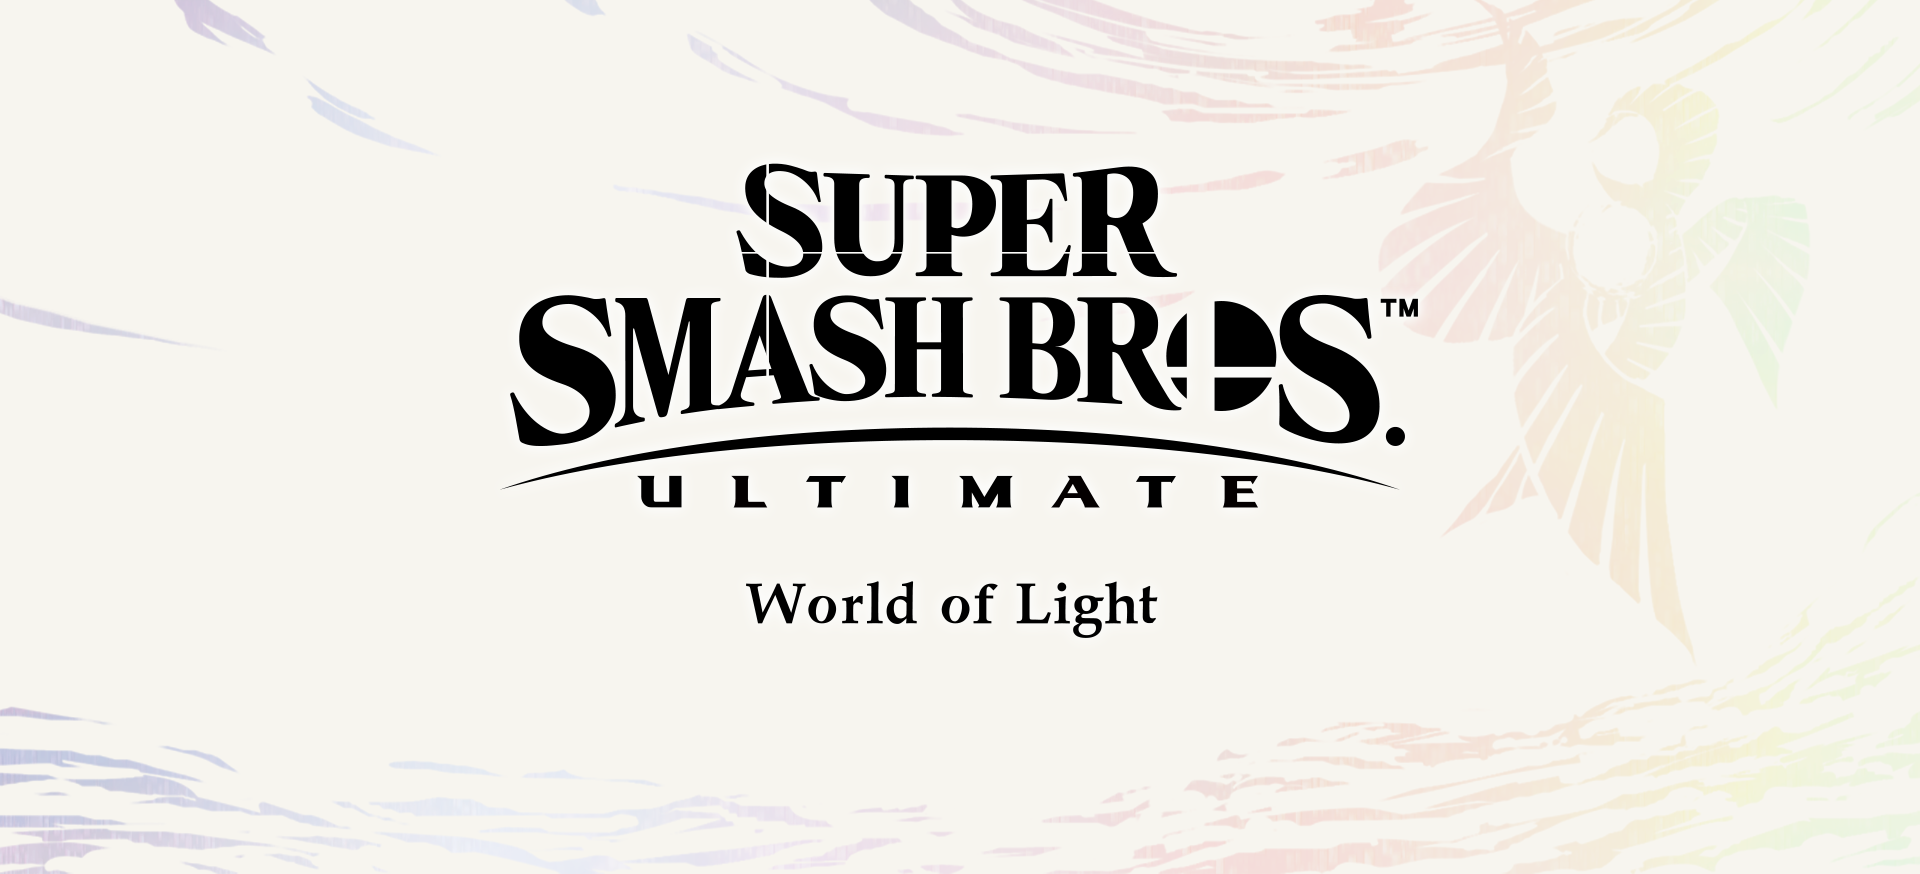 Super Smash Bros. Ultimate Lyrics